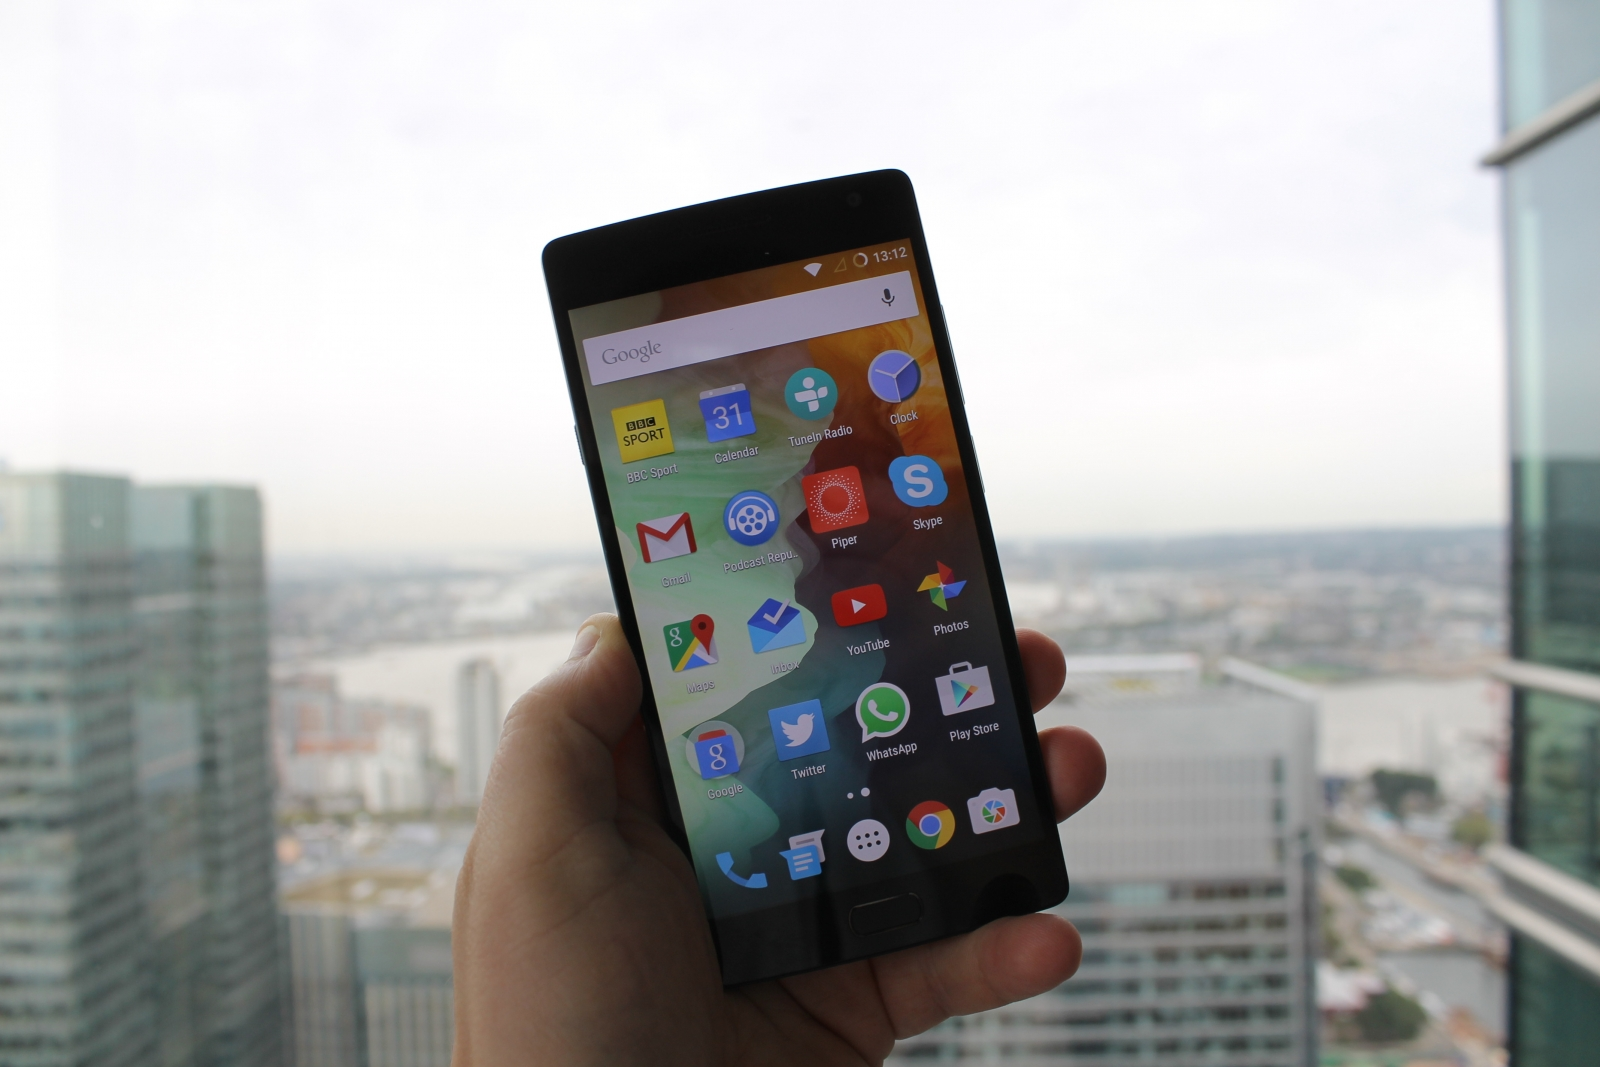 OnePlus 2 smartphone hands-on